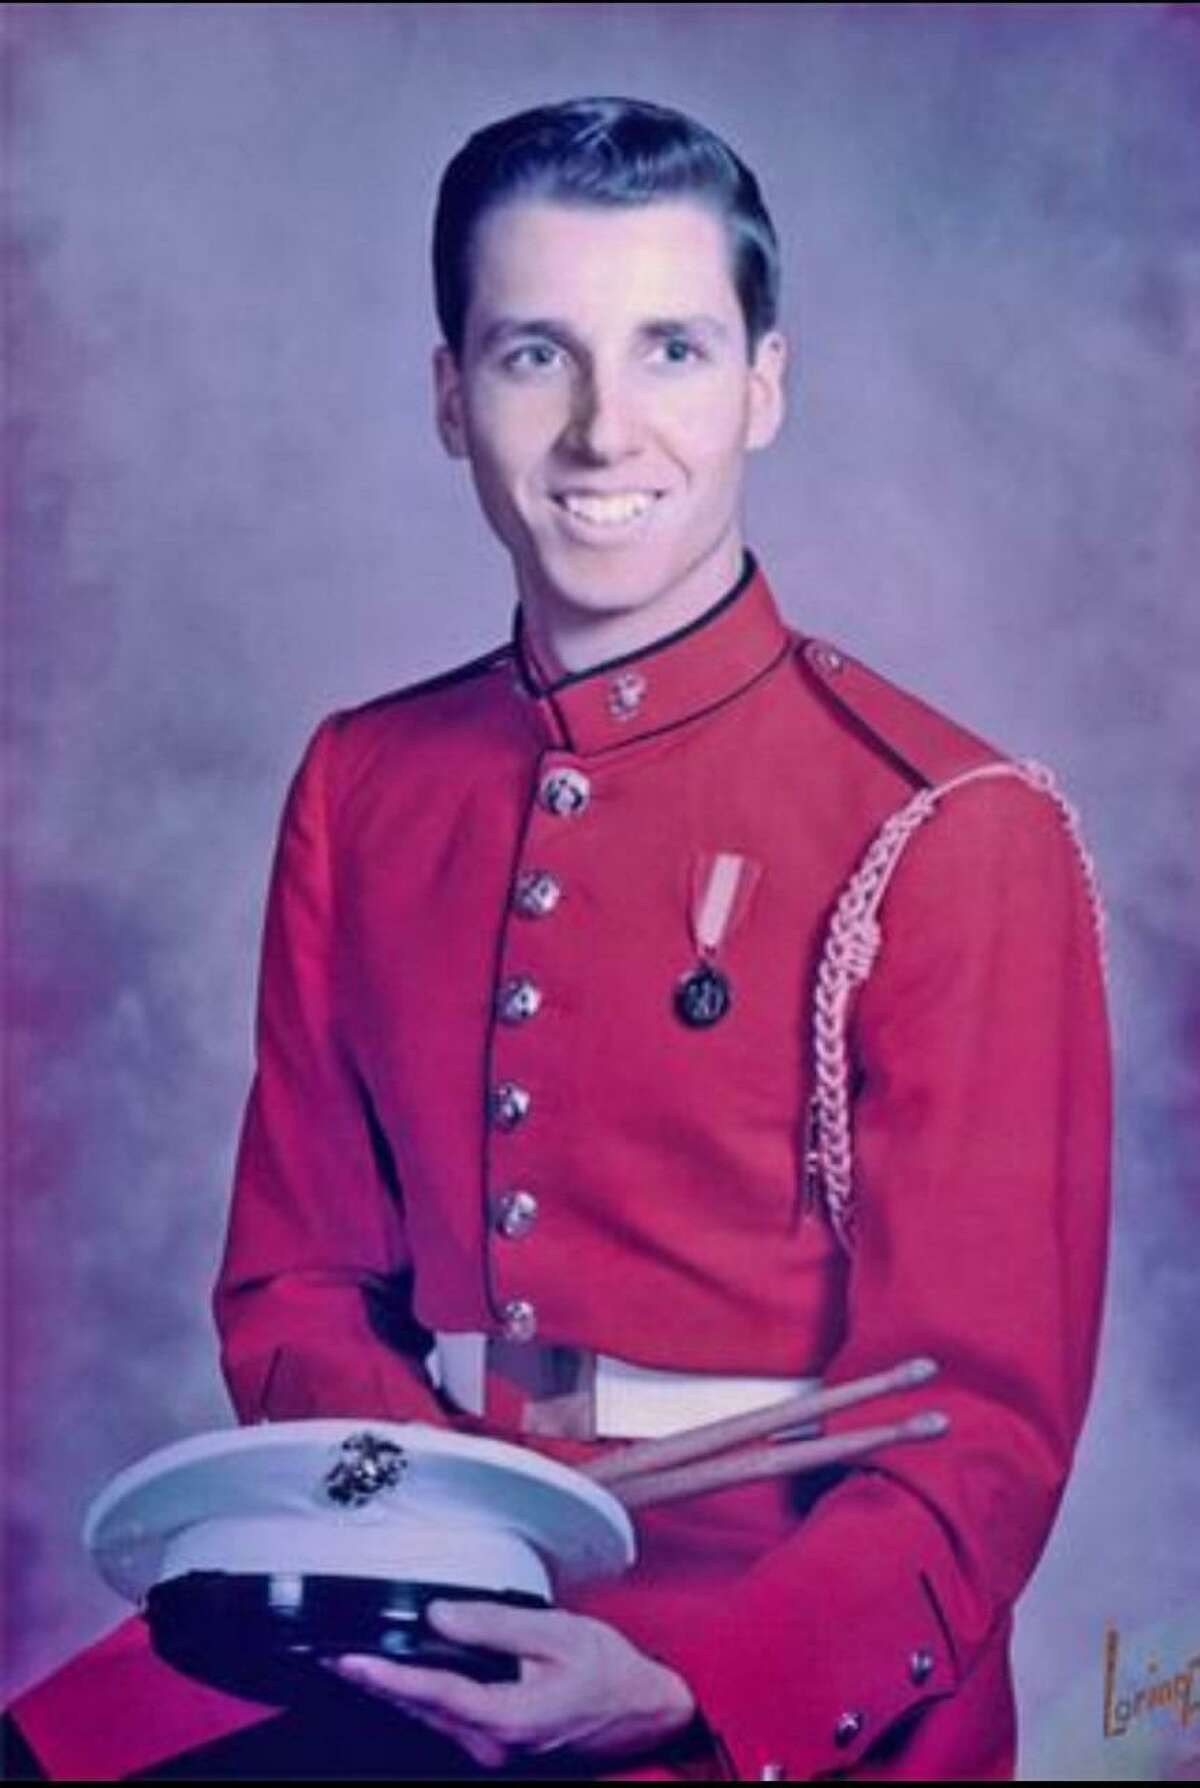 """Eddie Ostrowski in his dress uniform as a member of the USMC Drum & Bugle Corps, """"The Commandant's Own."""""""